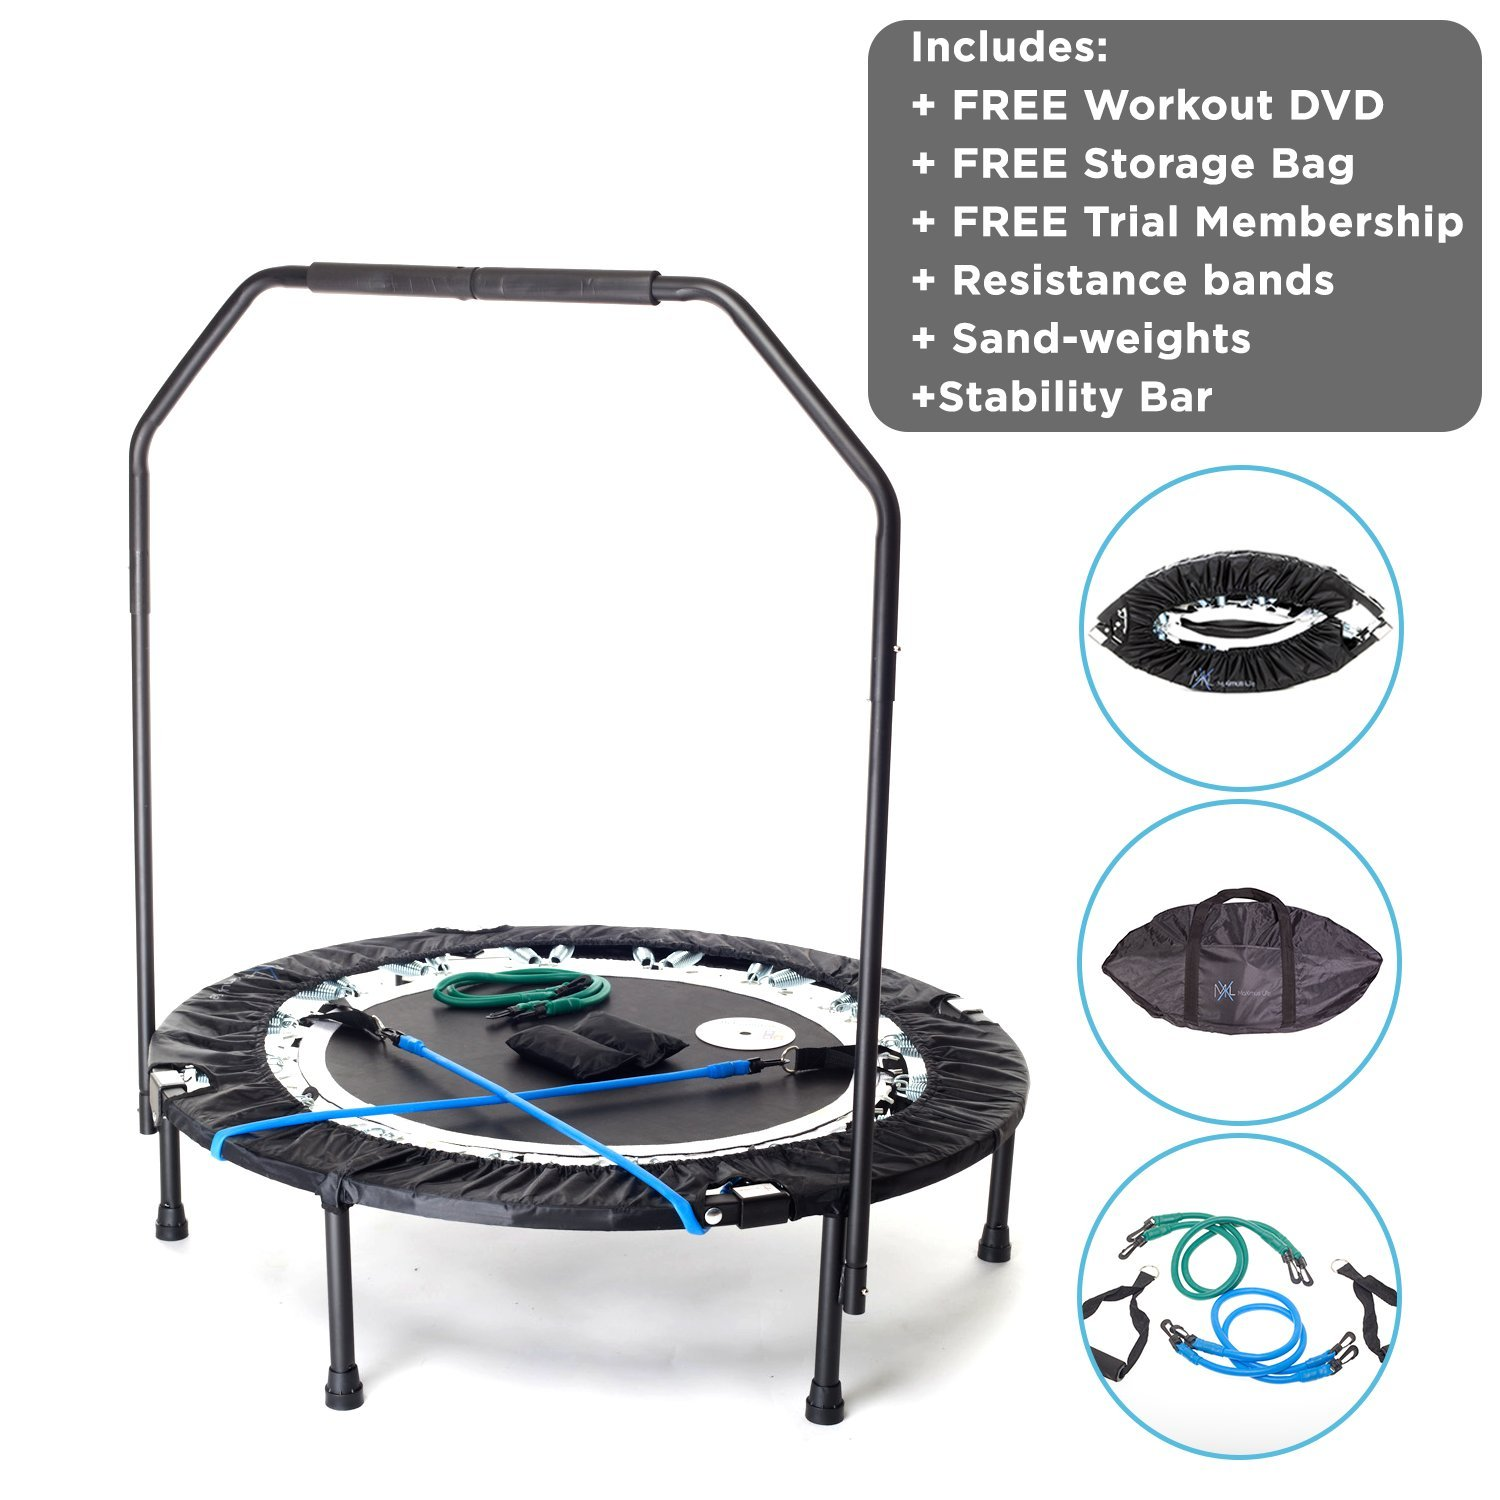 Maximus Pro Quarter Foldable Rebounder Mini Trampoline for Adults Includes 2 x DVD's + 7 Workouts, Rebounder with Handle Bar, Storage/Carry Bag, Resistance Bands & Weights Free Video Membership! Adult by MXL MaXimus Life